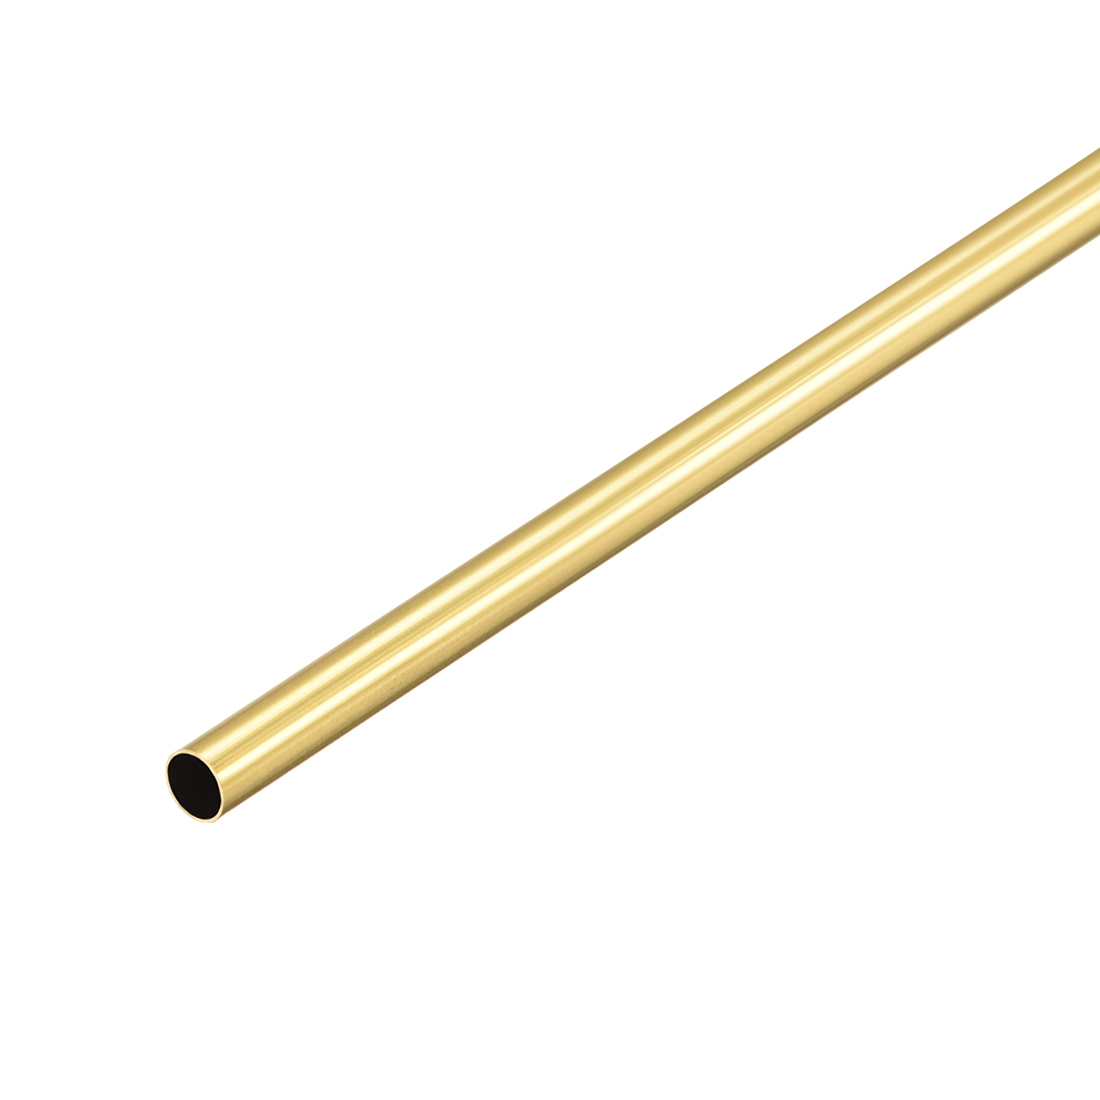 Uxcell Brass Round Tube 300mm Length 4.5mm OD 0.2mm Wall Thickness Seamless Straight Pipe Tubing